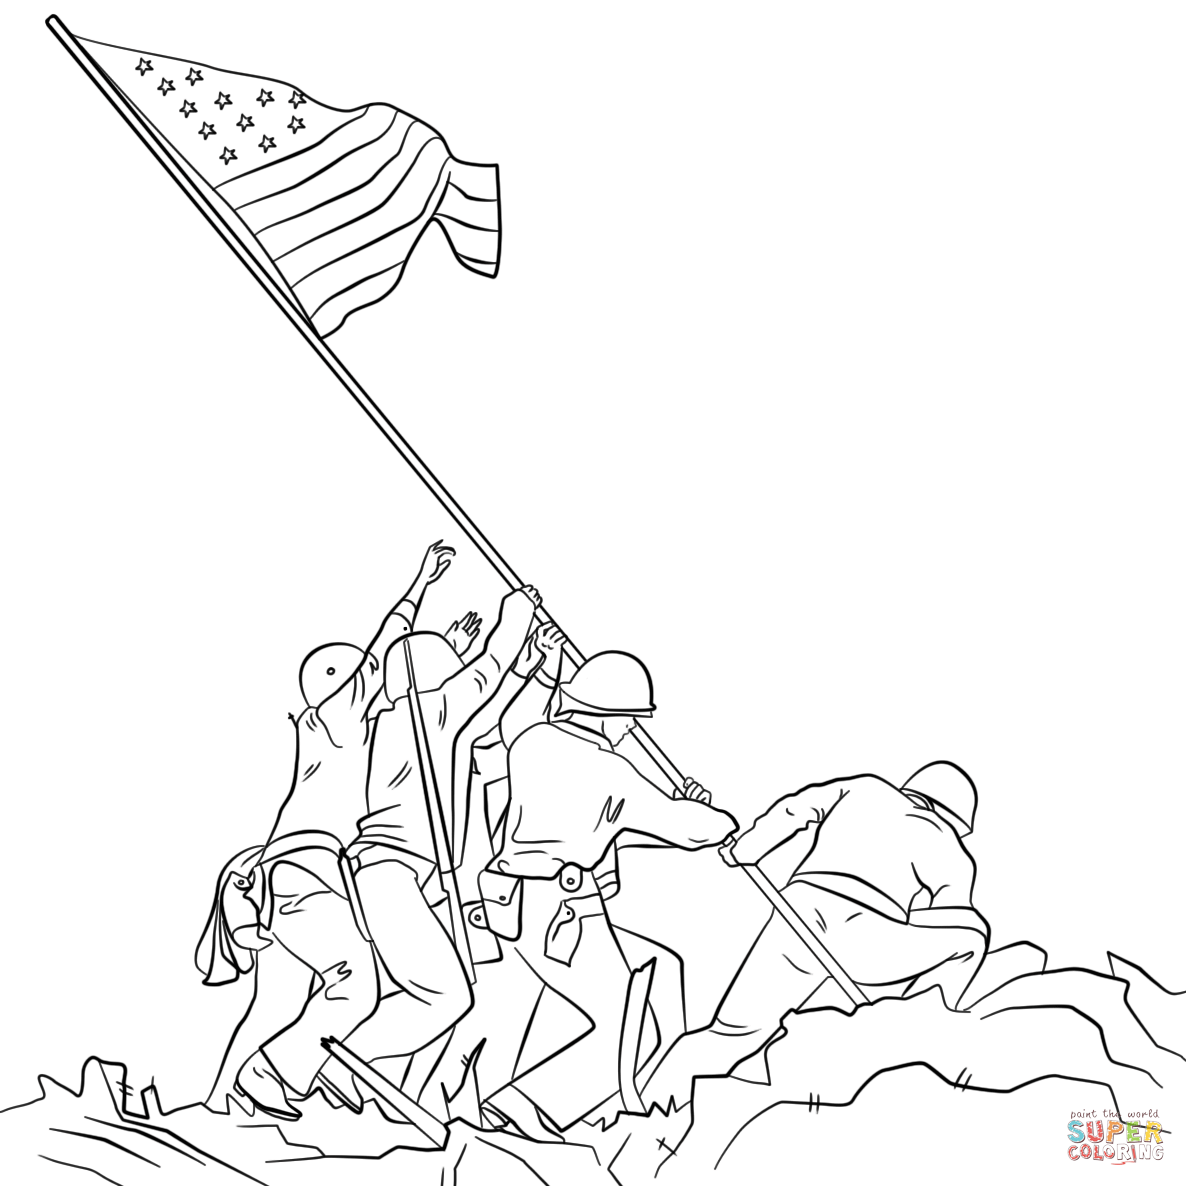 Veterans Day Coloring Pages Free Coloring Pages